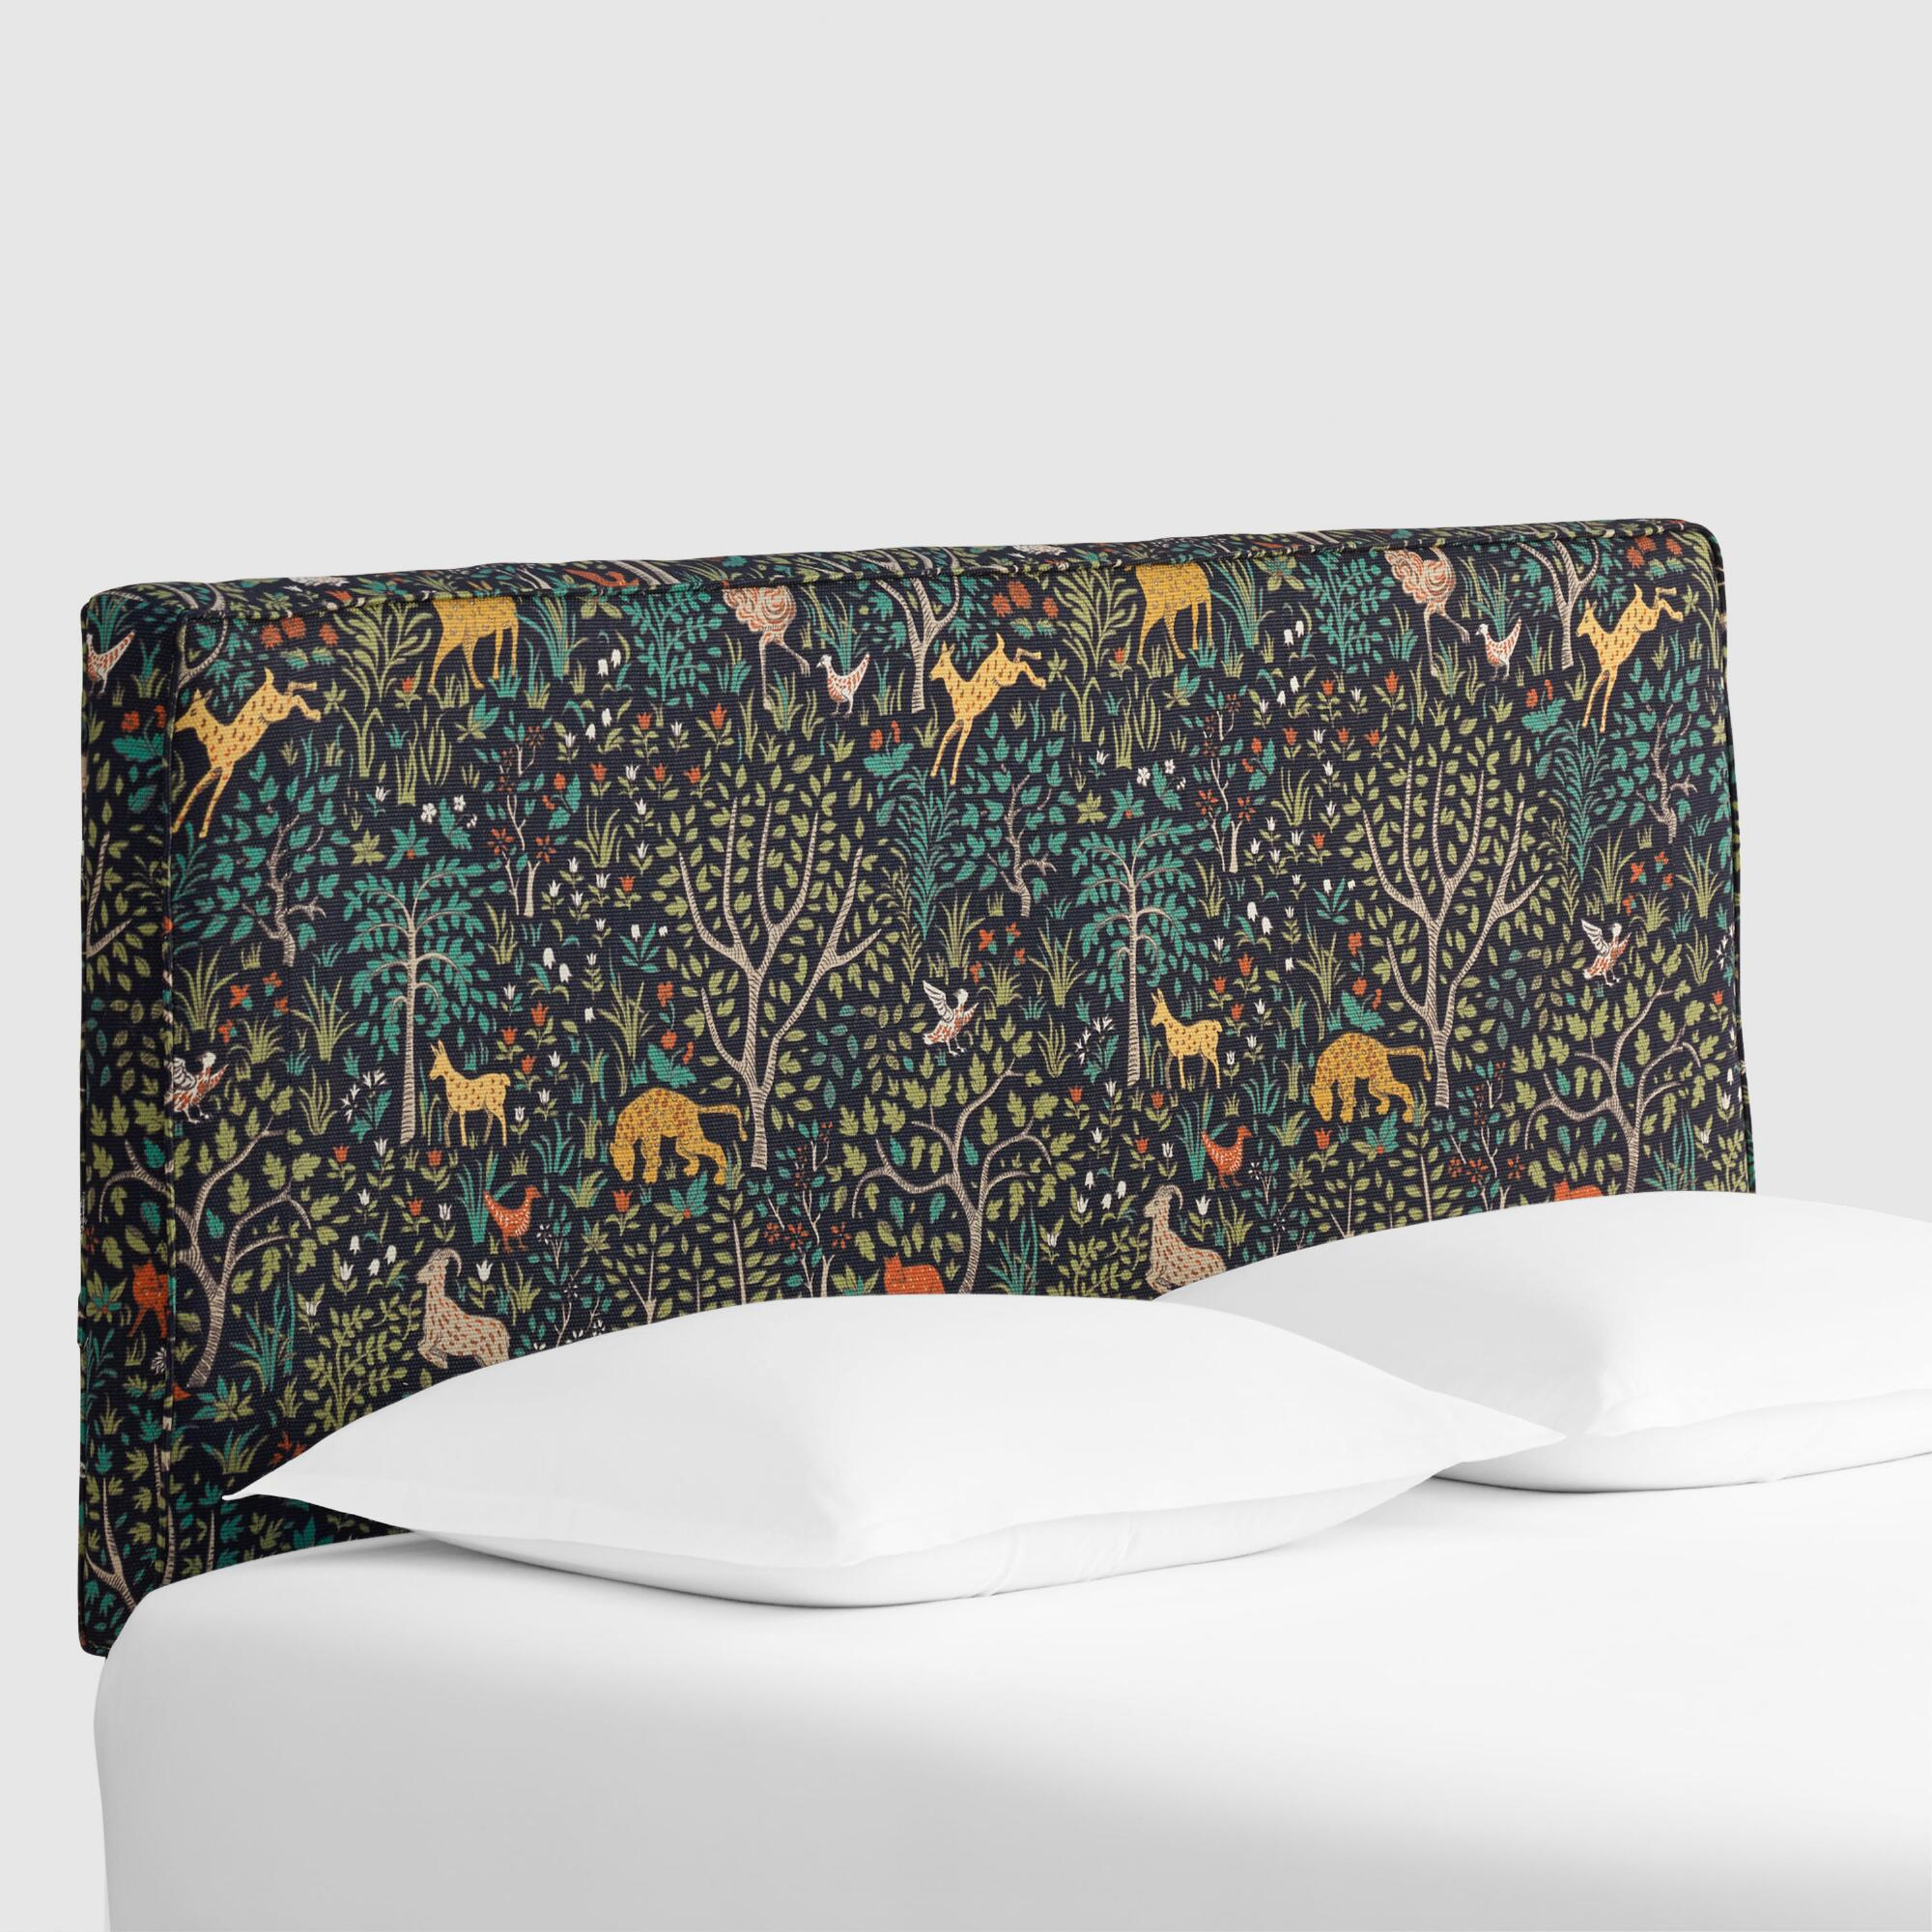 Folkland Loran Upholstered Headboard: Blue/multi - Fabric - King Headboard By World Market King